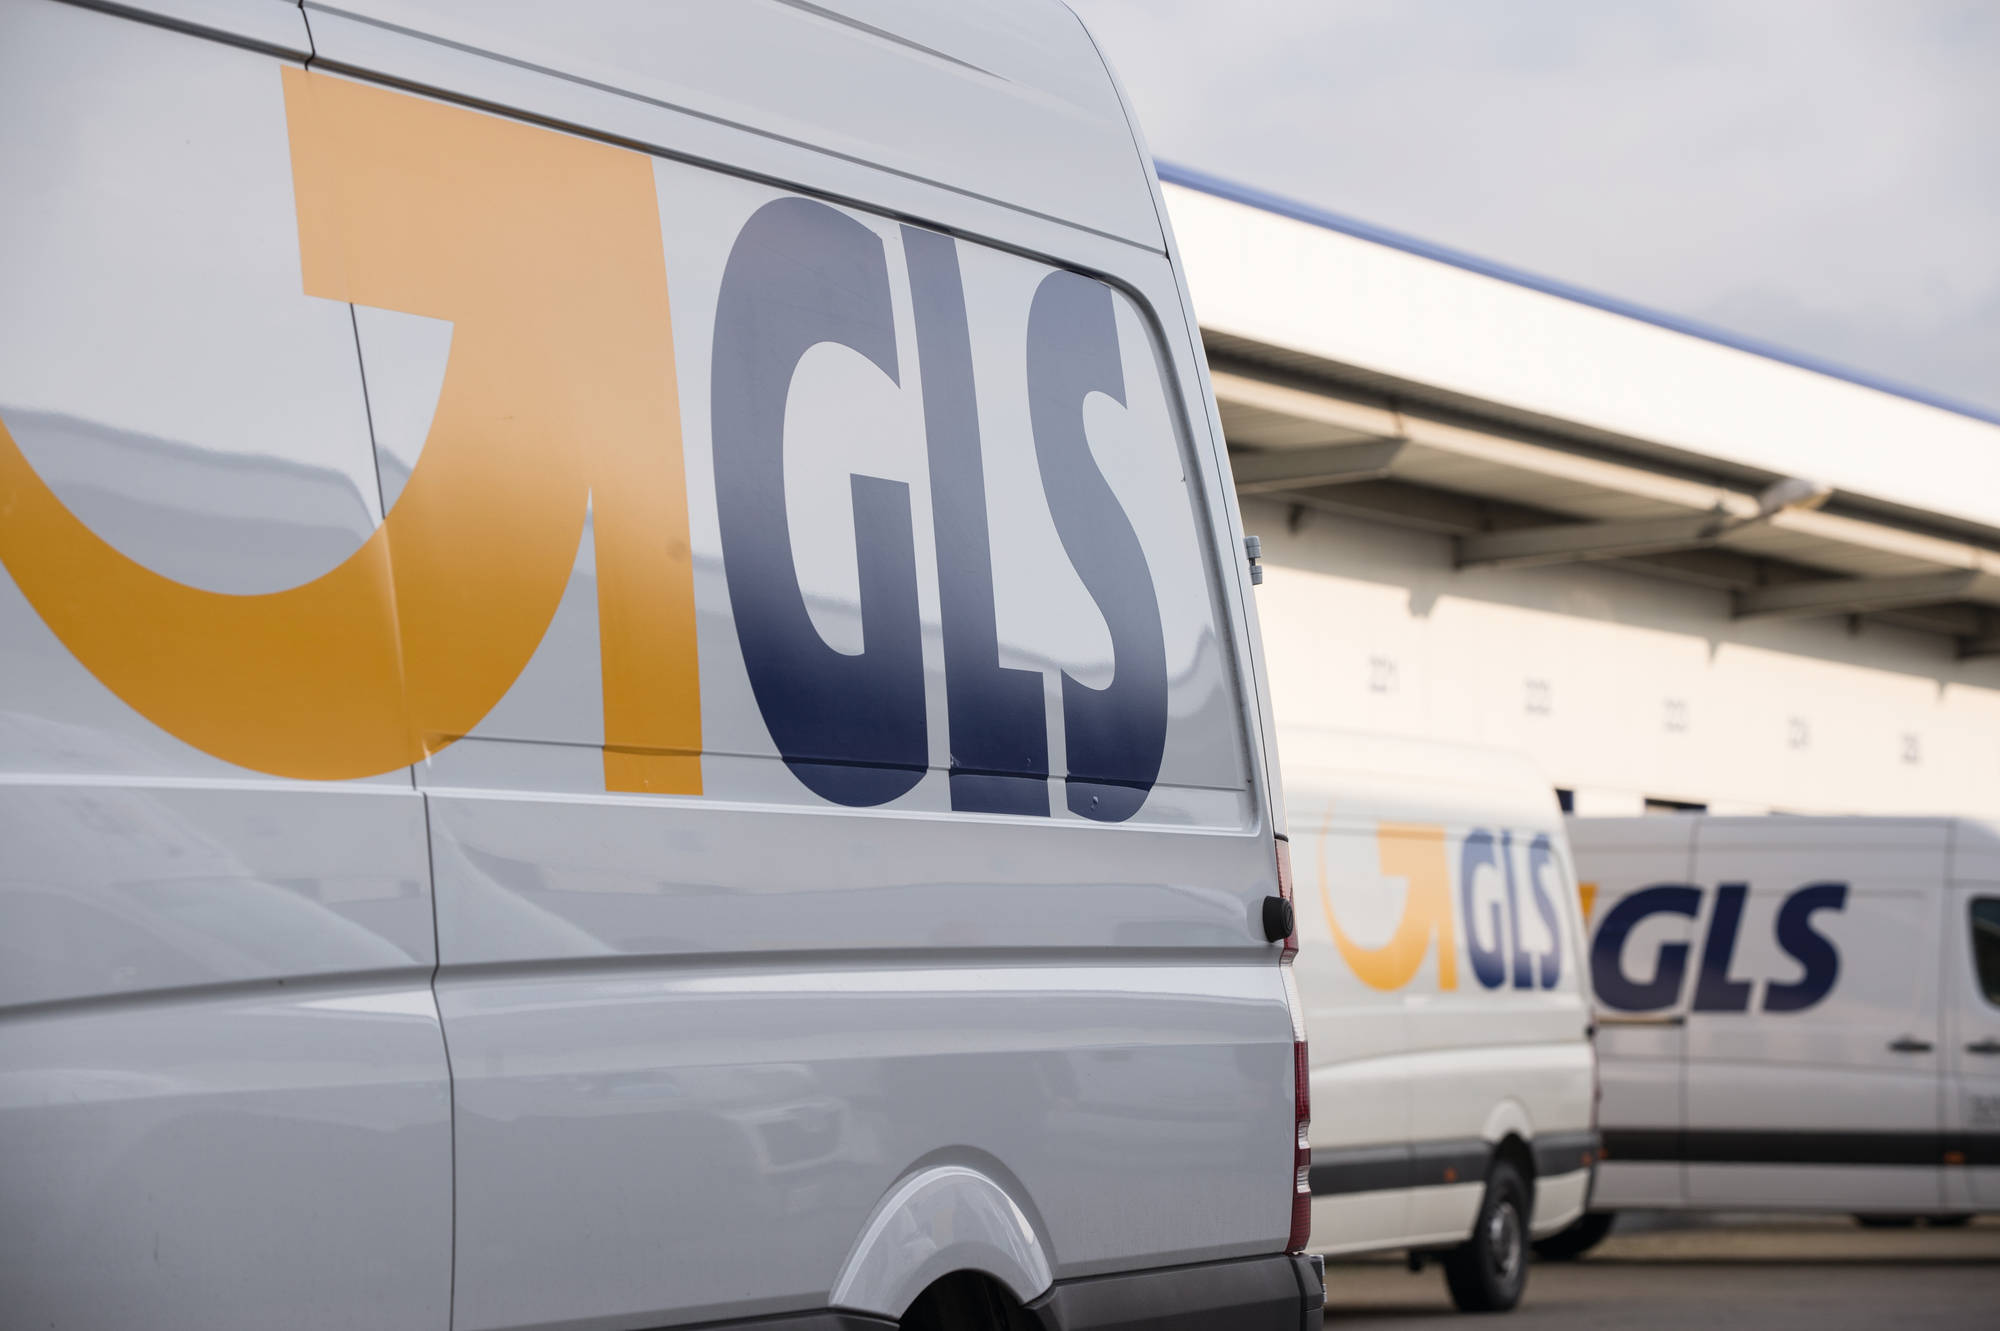 GLS Germany ramping up for peak season